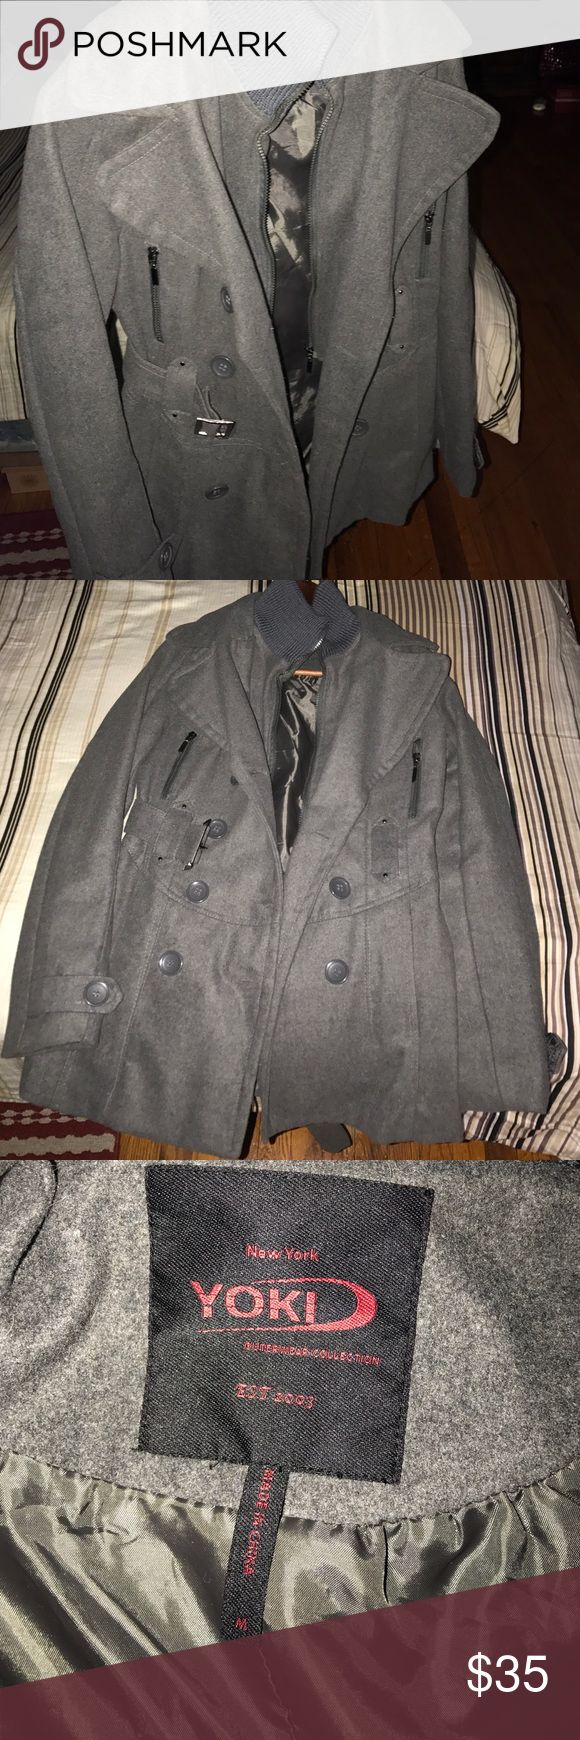 Grey pea coat It's a great casual jacket for spring or fall. Great condition. Too small for me. Materials it's made of. Shell: 90% polyester 10% wool. Cleaning: dry clean only. Yoki Jackets & Coats Pea Coats